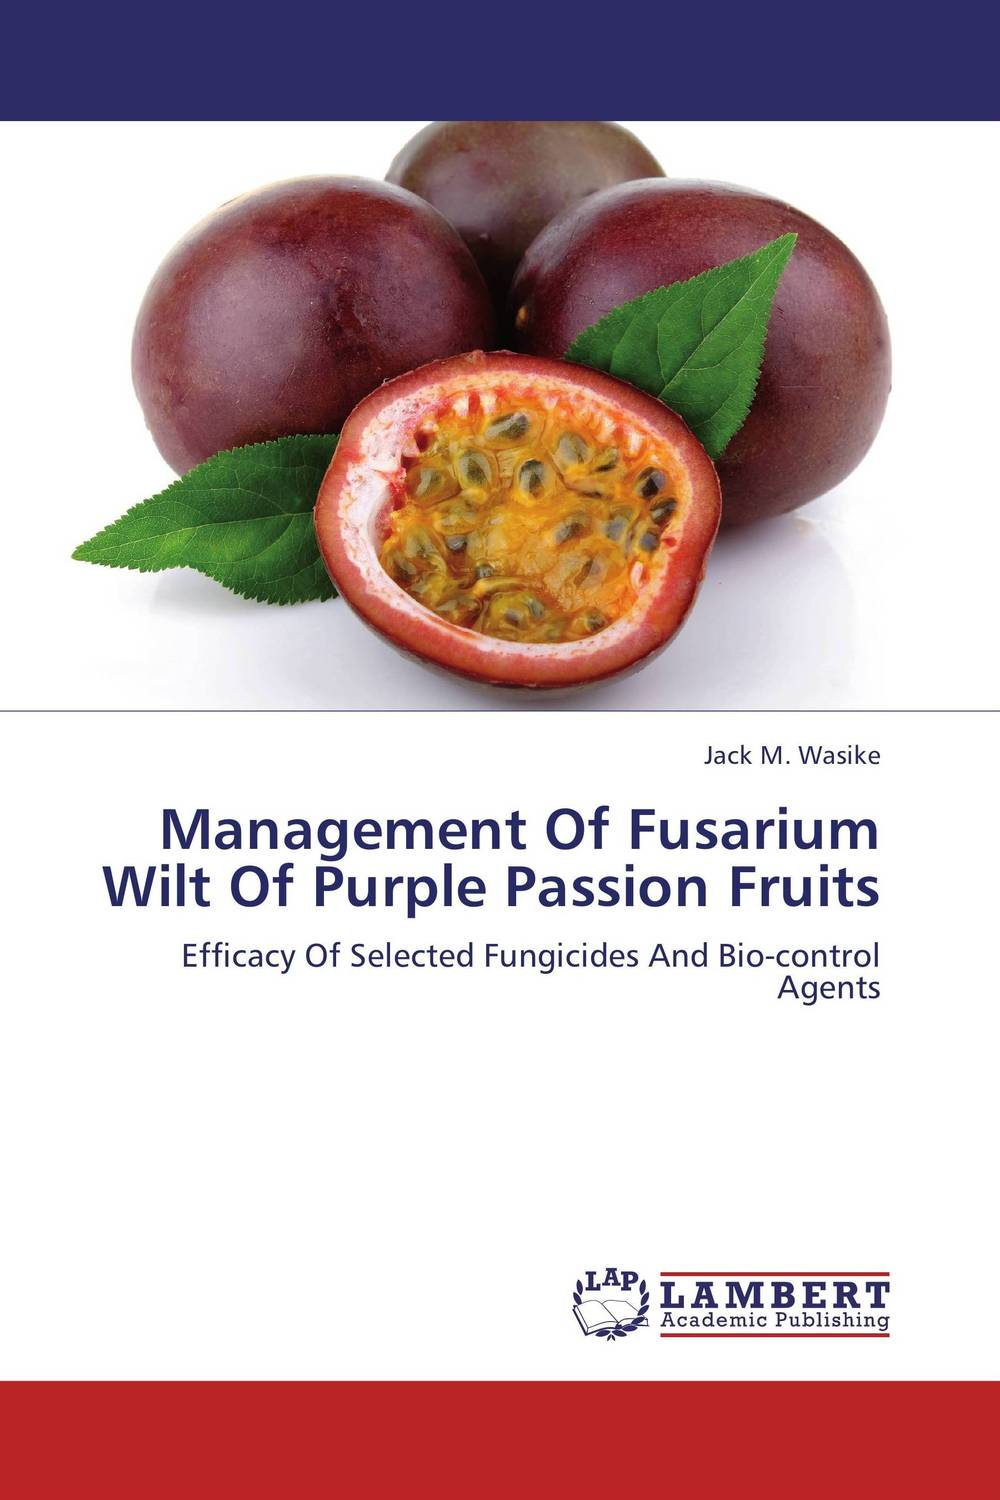 Management Of Fusarium Wilt Of Purple Passion Fruits gift set of anal plug purple jelly and one package of trojan fire and ice 3 condoms total in package